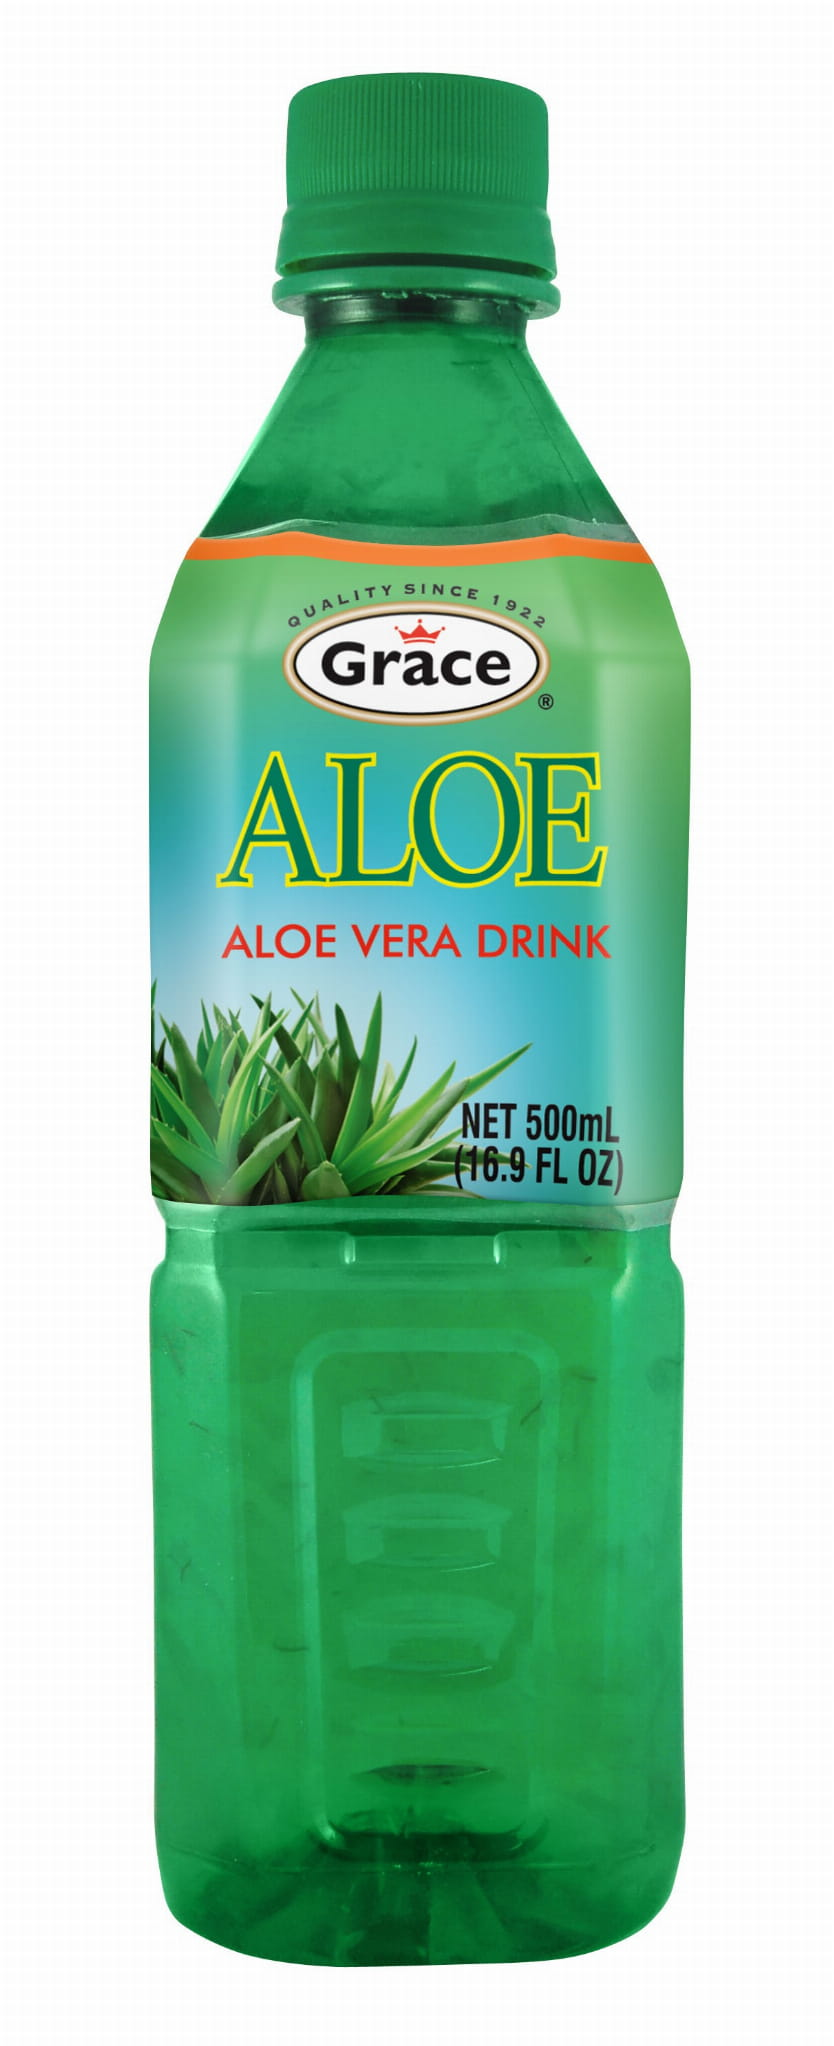 grace aloe vera nap j aloe vera 500ml. Black Bedroom Furniture Sets. Home Design Ideas